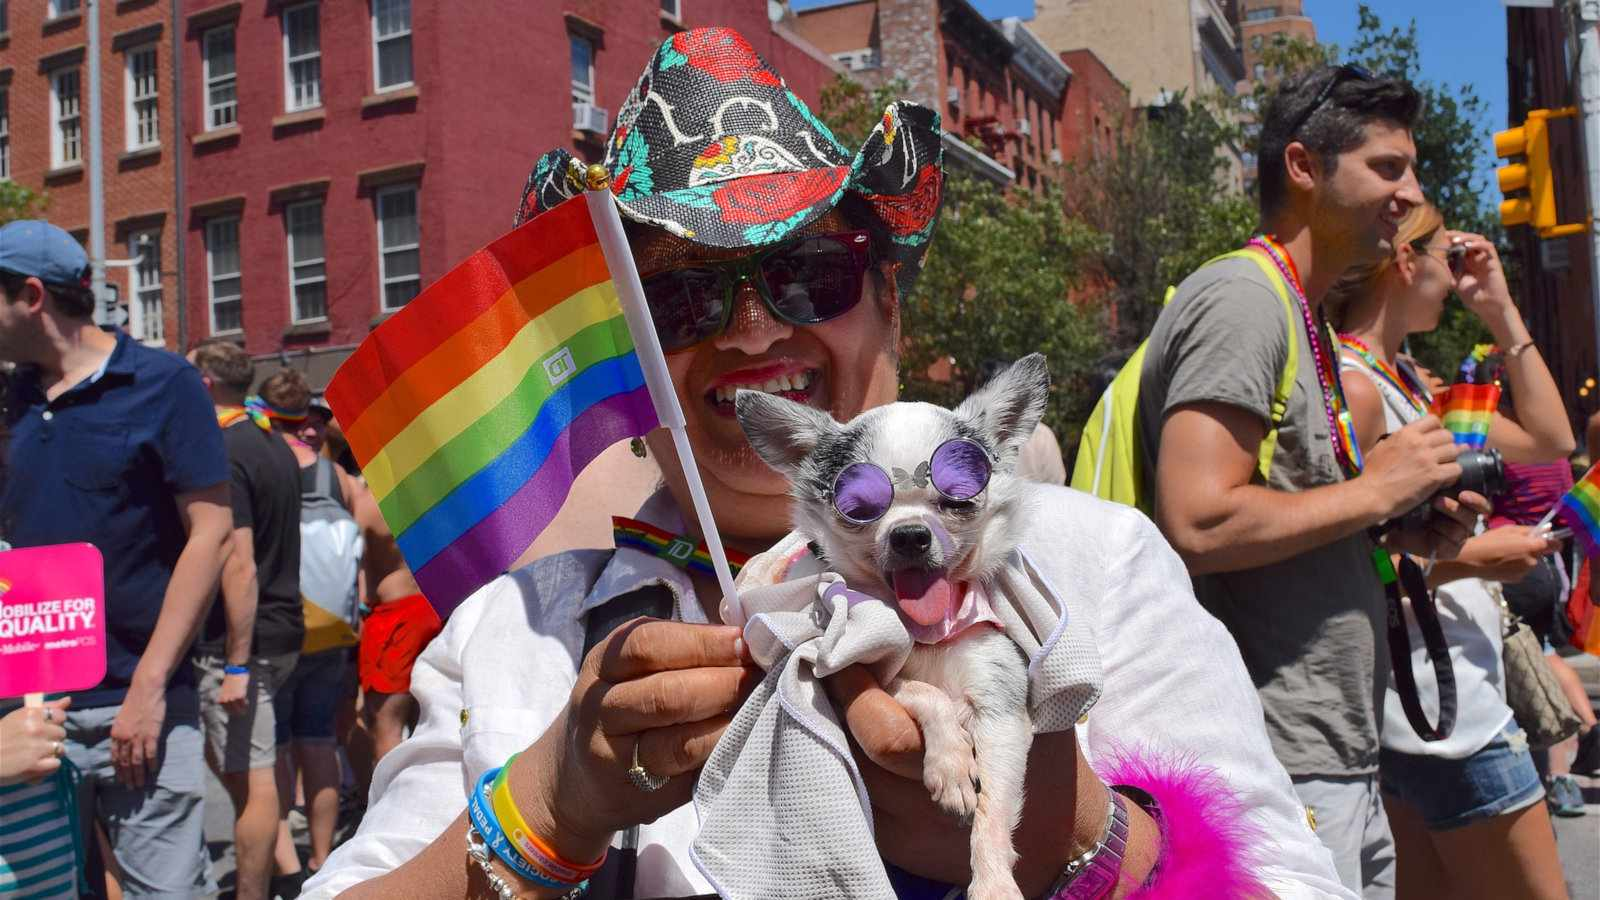 The Pride Parade is an integral celebration for Pride New York